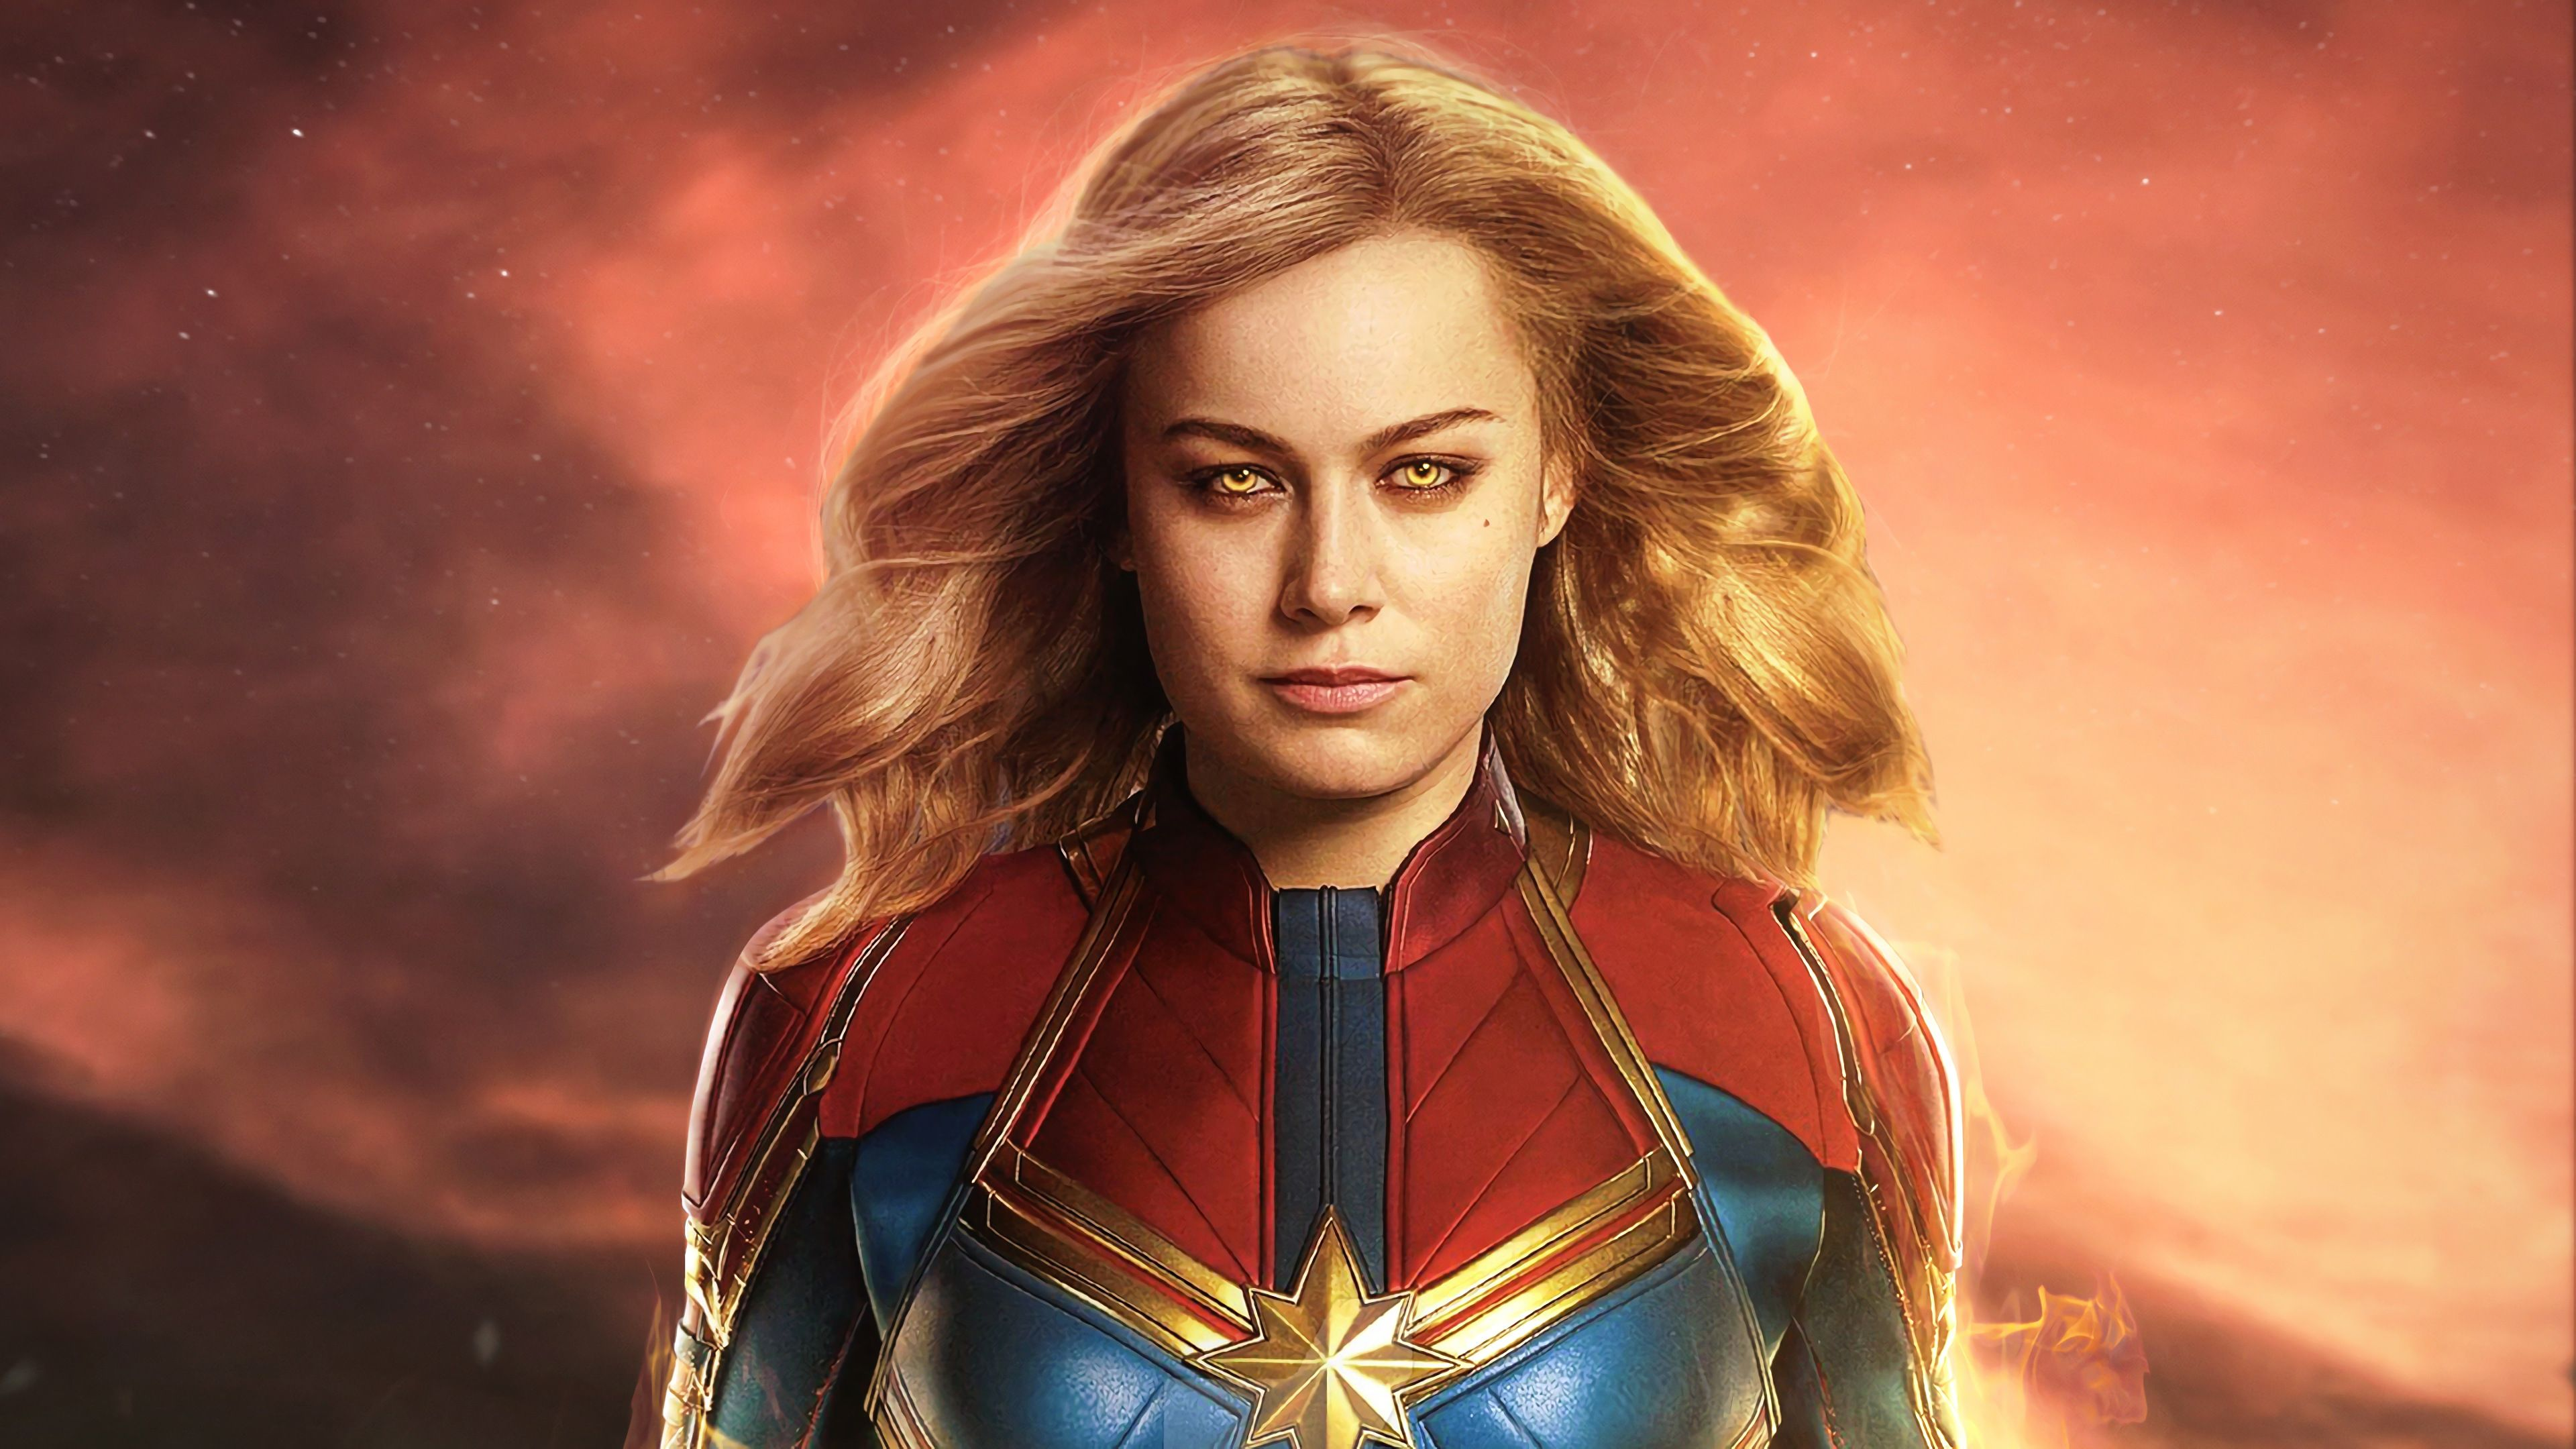 Captain Marvel Movie 2019 Brie Larson As Carol Danvers 4k Wallpaper Captain Marvel Movie 2019 Captain Marvel Captain Marvel Marvel Heroines Superhero Film